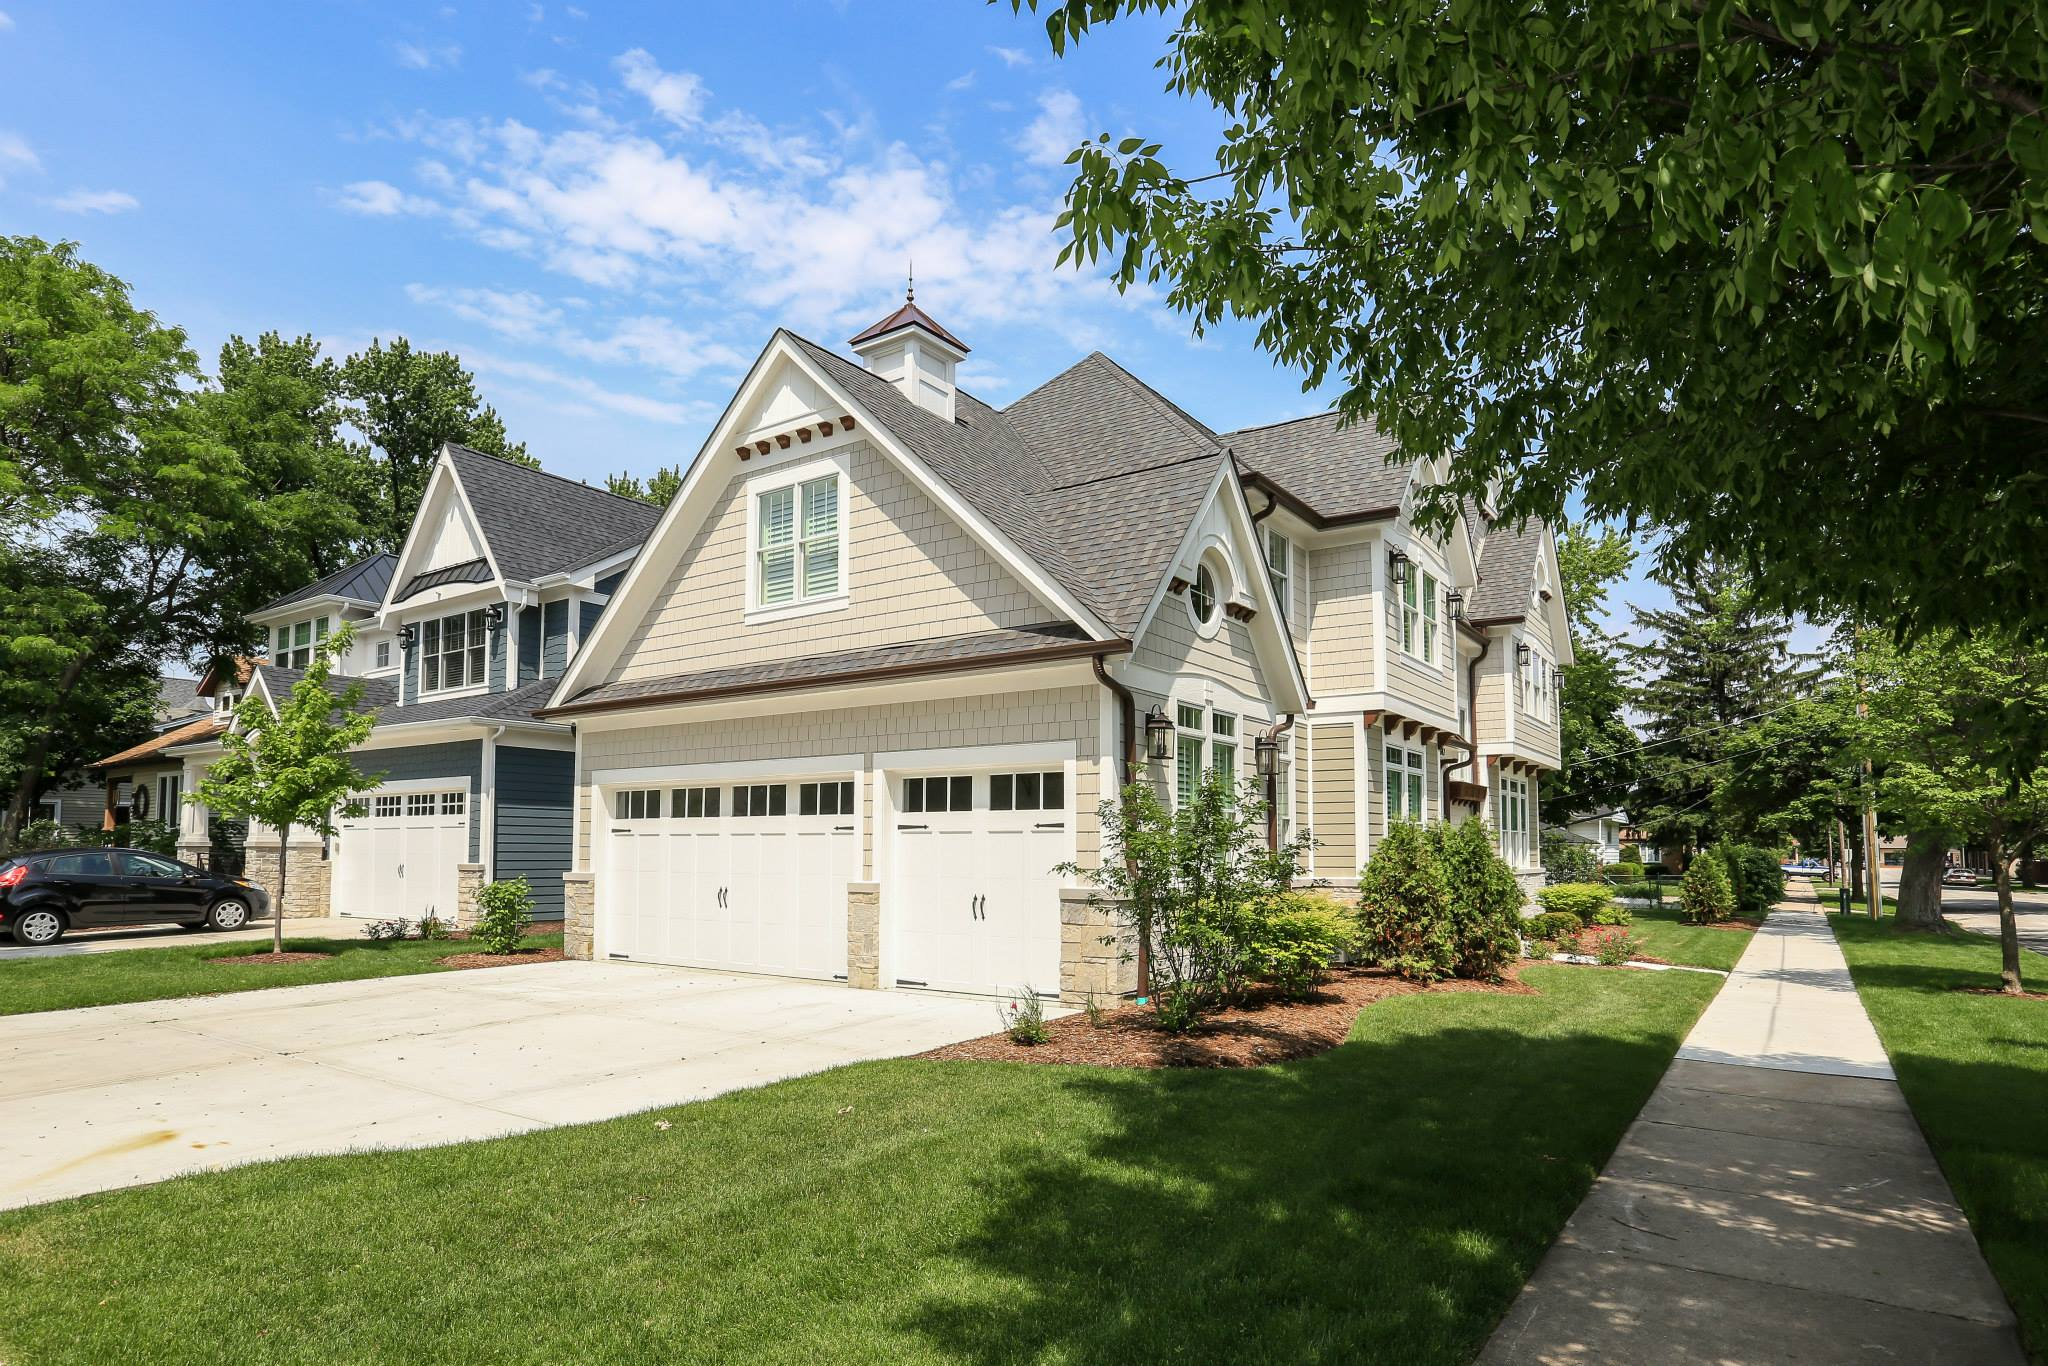 Cream colored cedar shake siding colors with brown gutters and black shingled roof. White trim and wall paneling. White garage doors. Light stone veneer. Concrete driveway and walk.